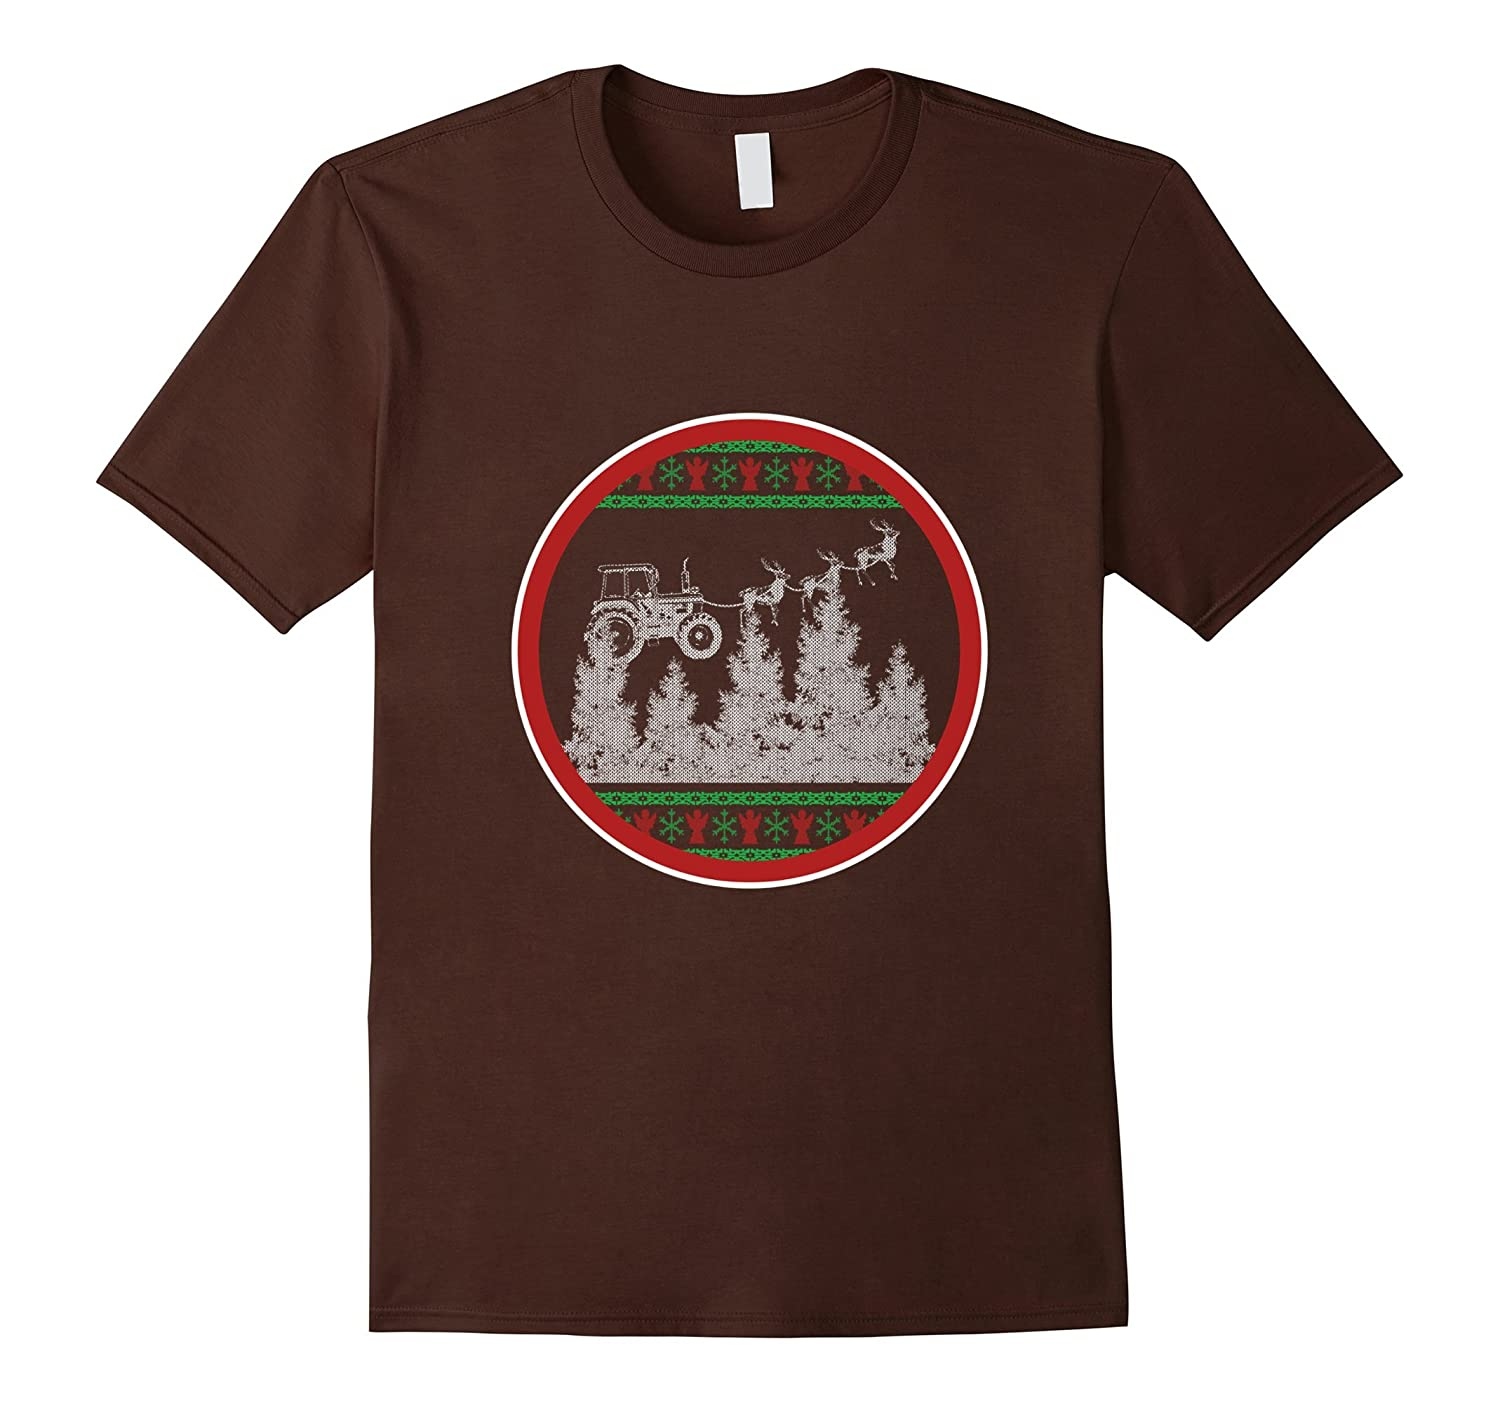 Funny Tractor T-shirt Ugly Christmas Jumper Tee Gift